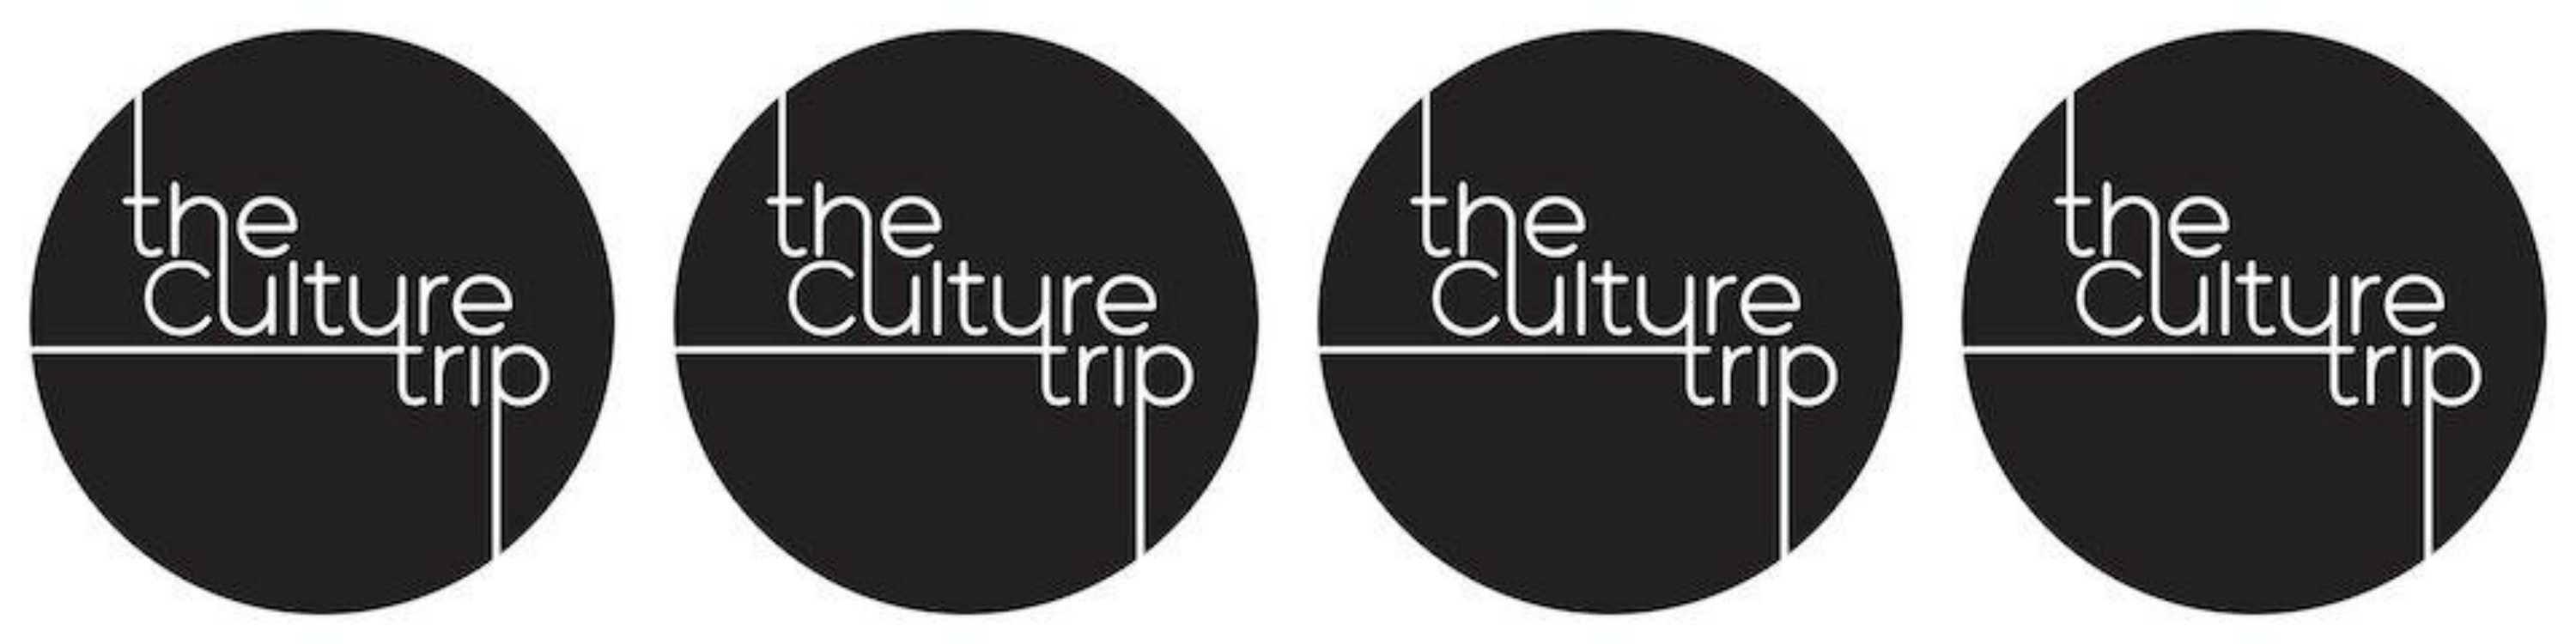 The Culture Trip collage